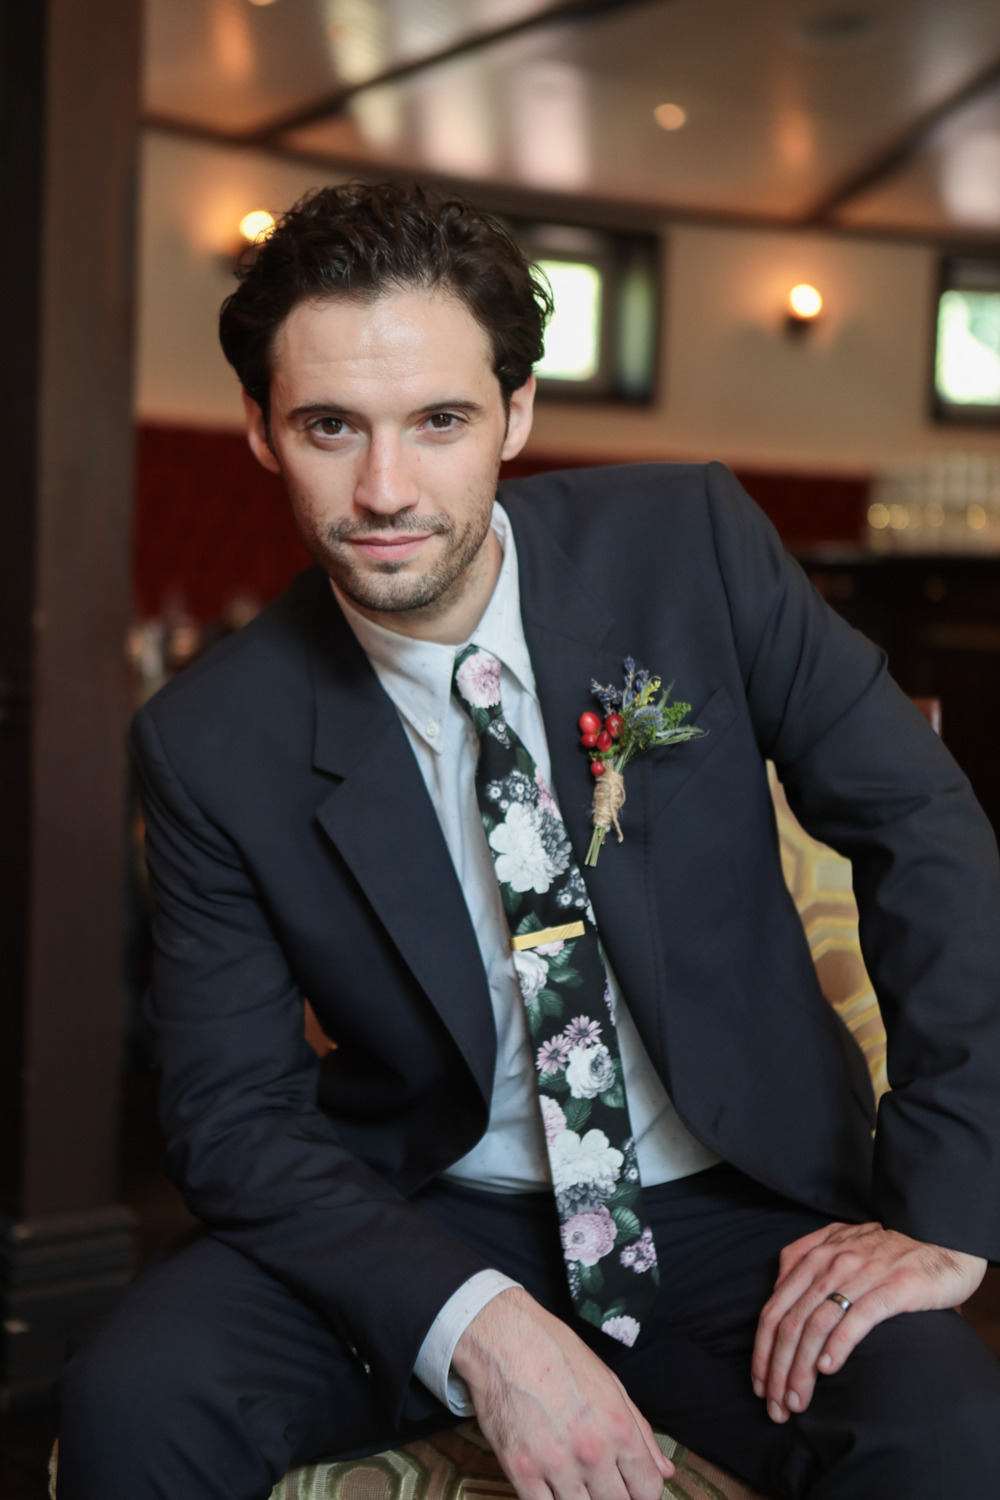 Portrait of the groom in a floral print tie.